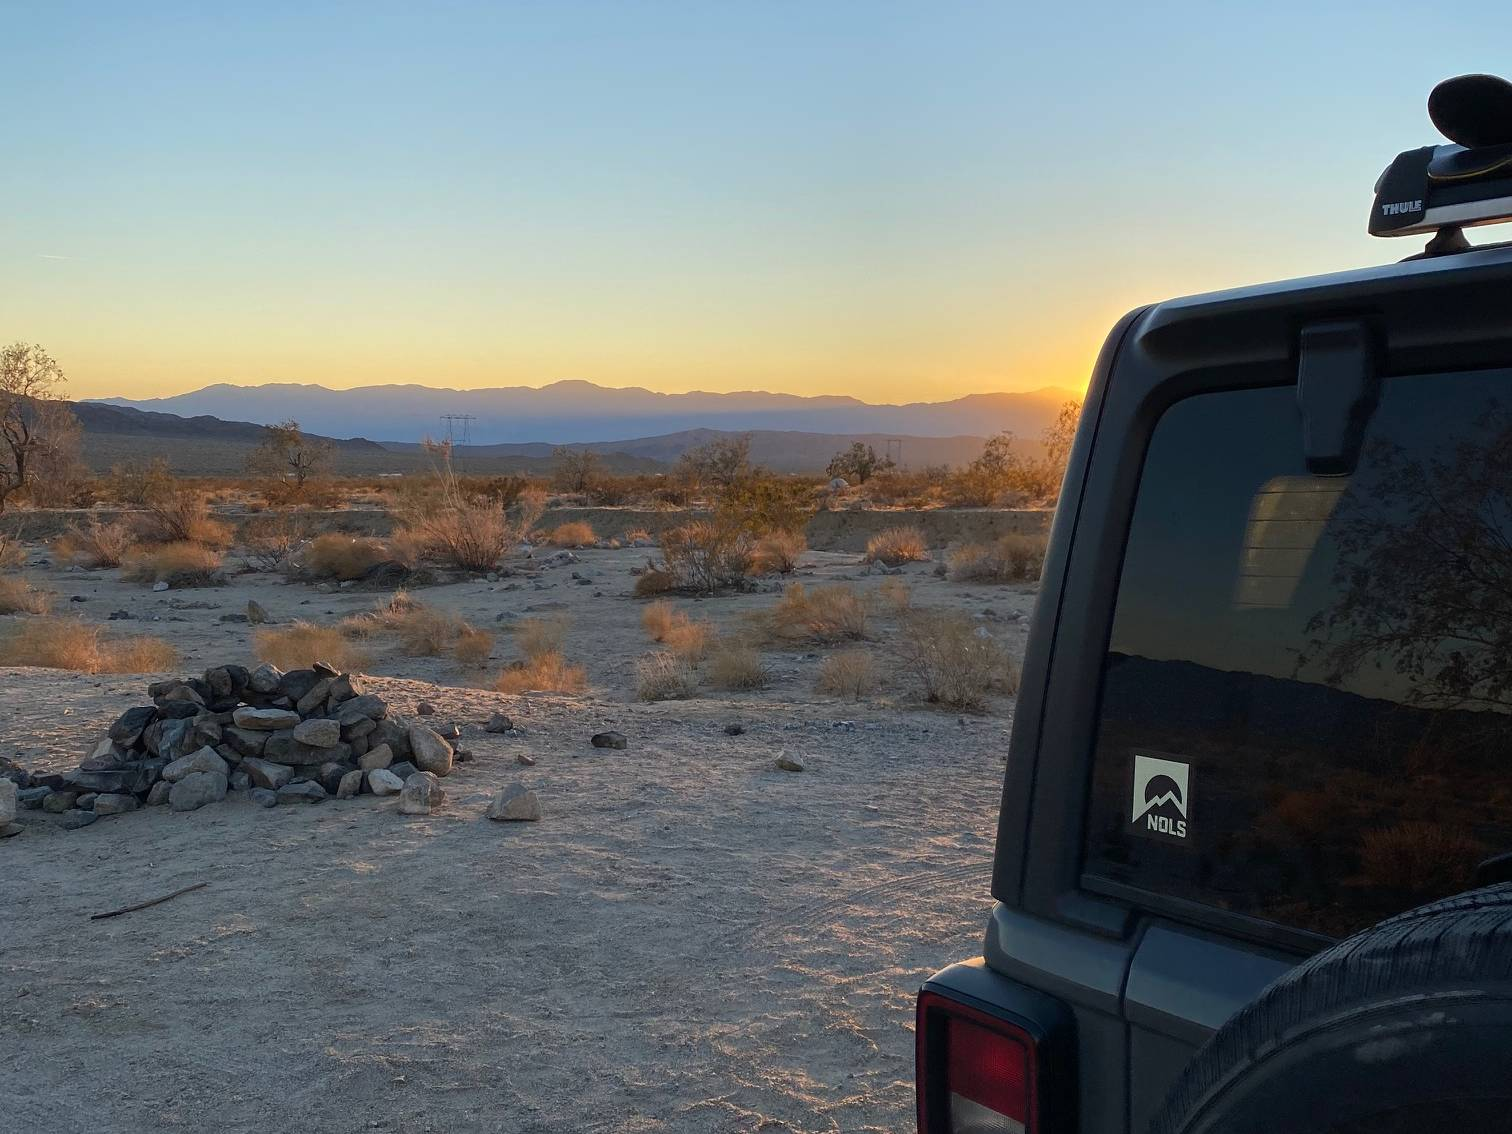 Back of a jeep in the desert at sunset